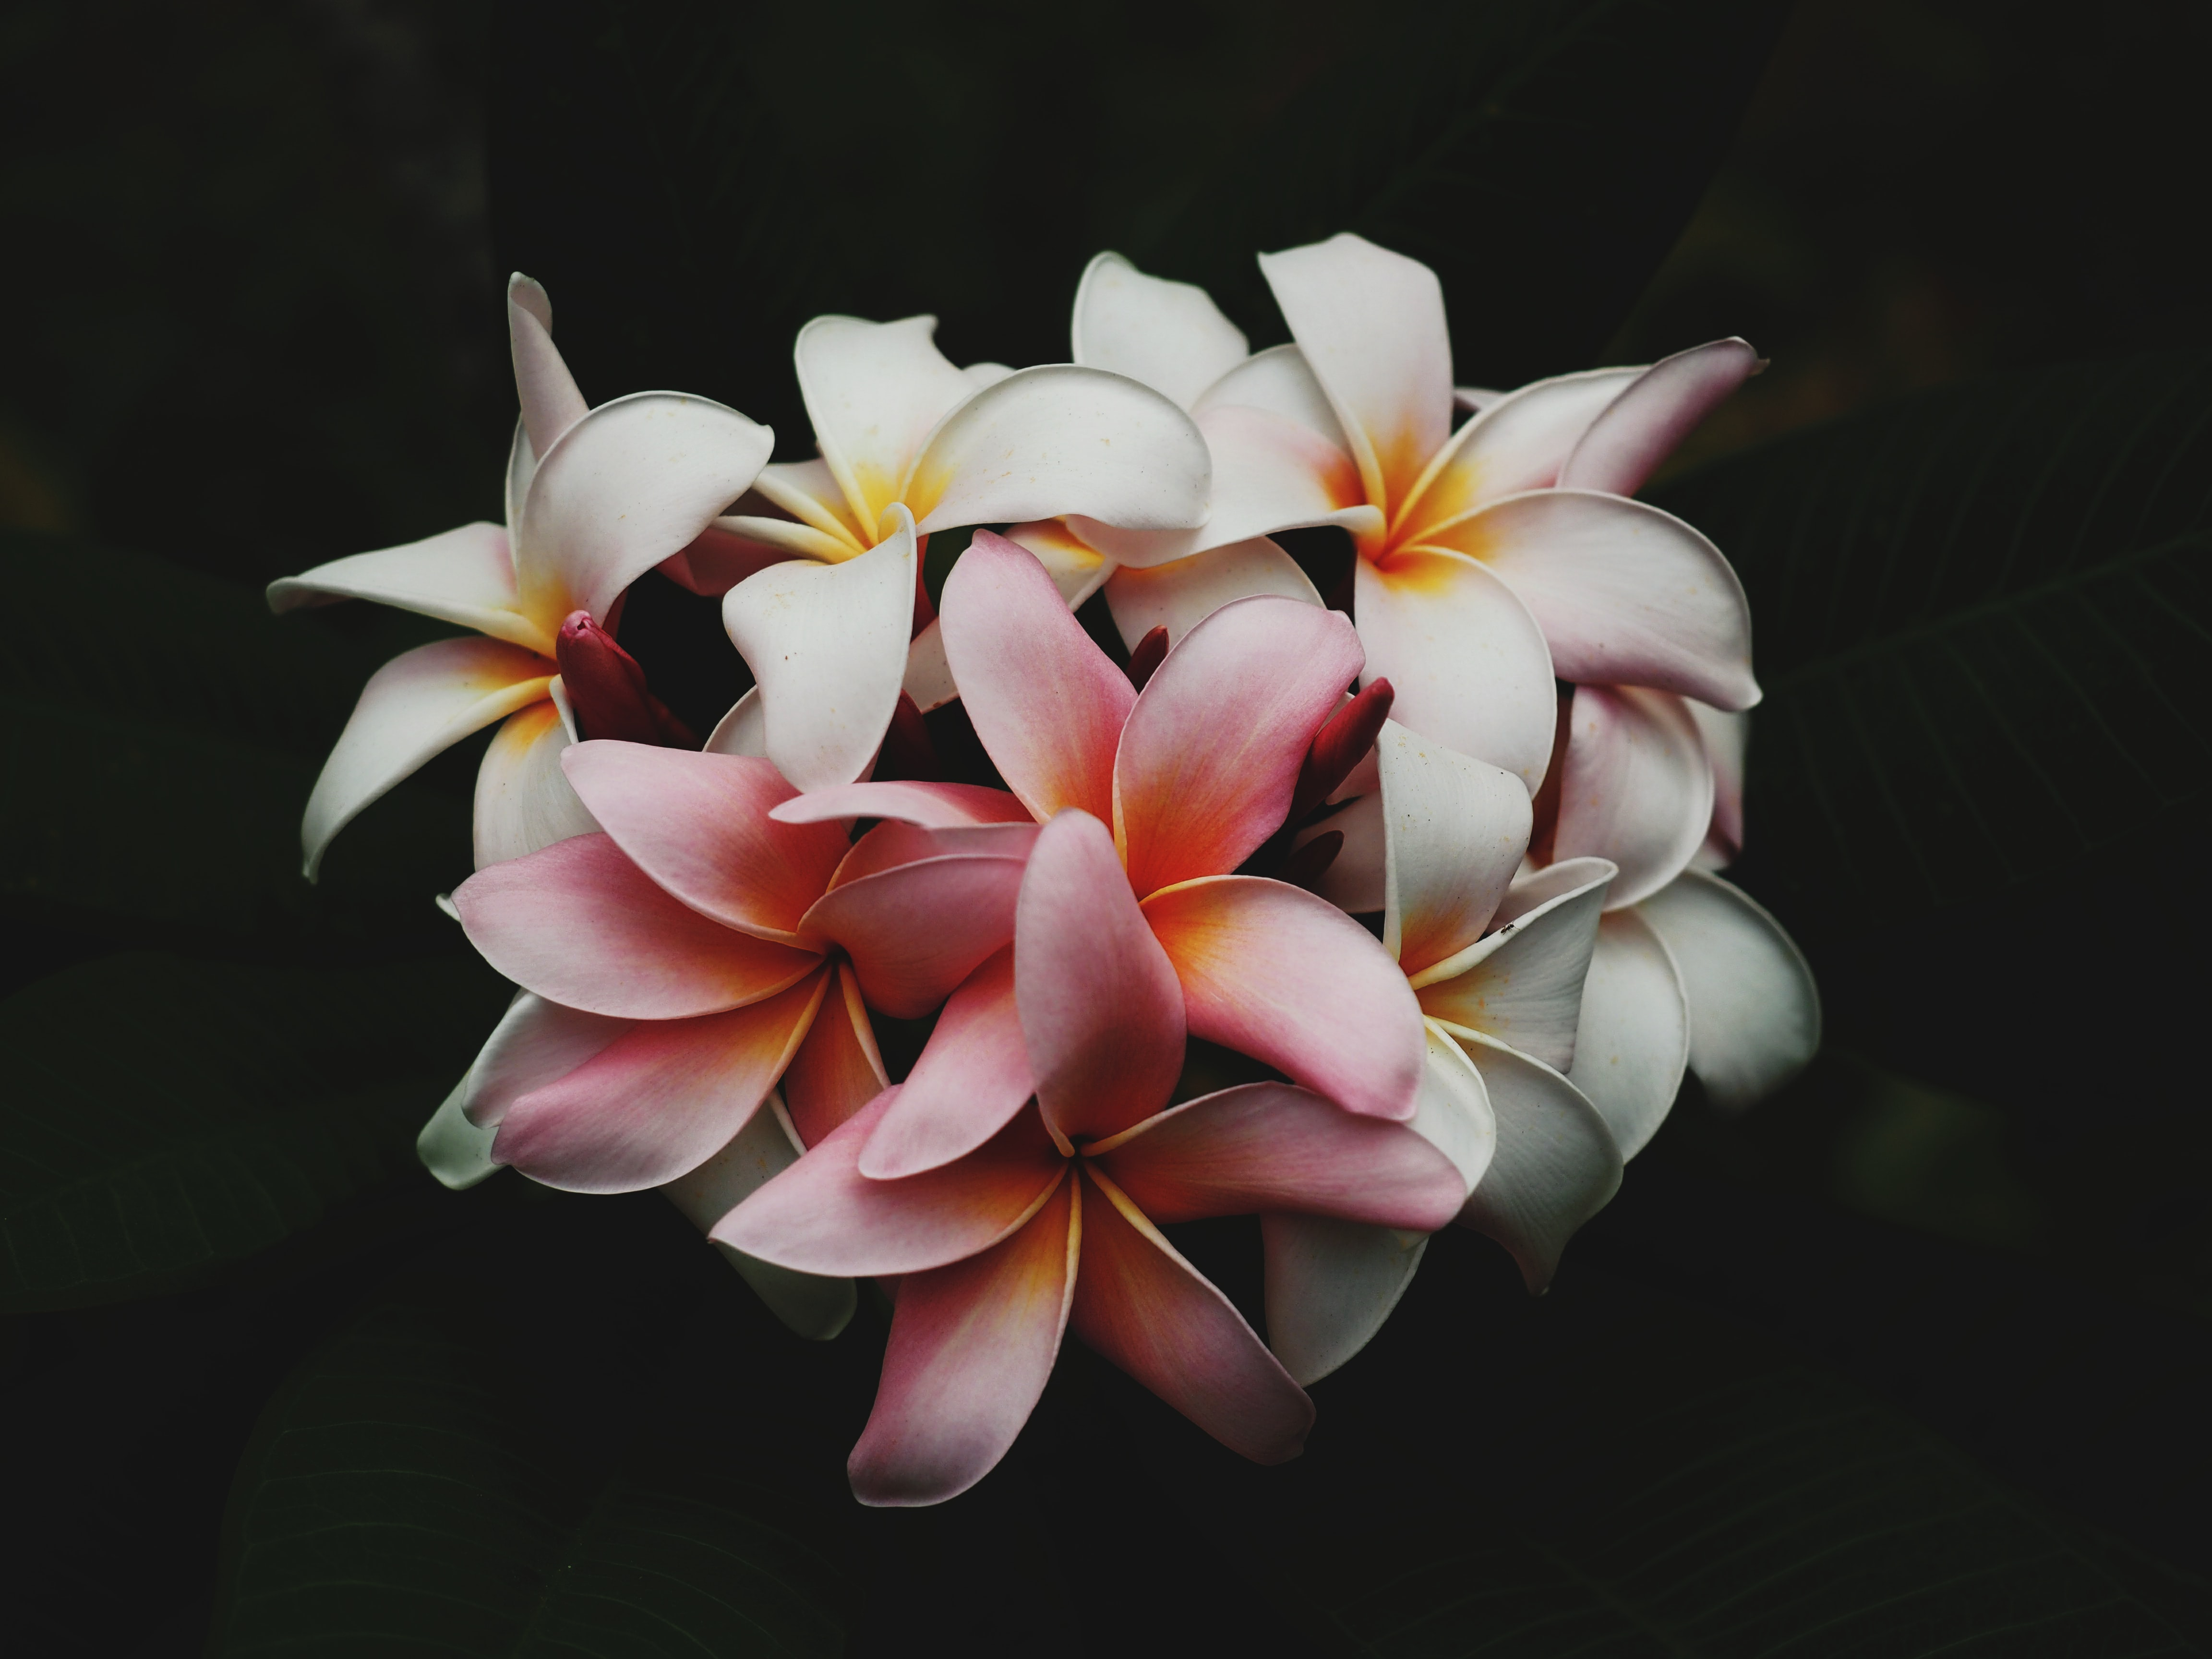 Close-up of a cluster of white and pink plumeria flowers